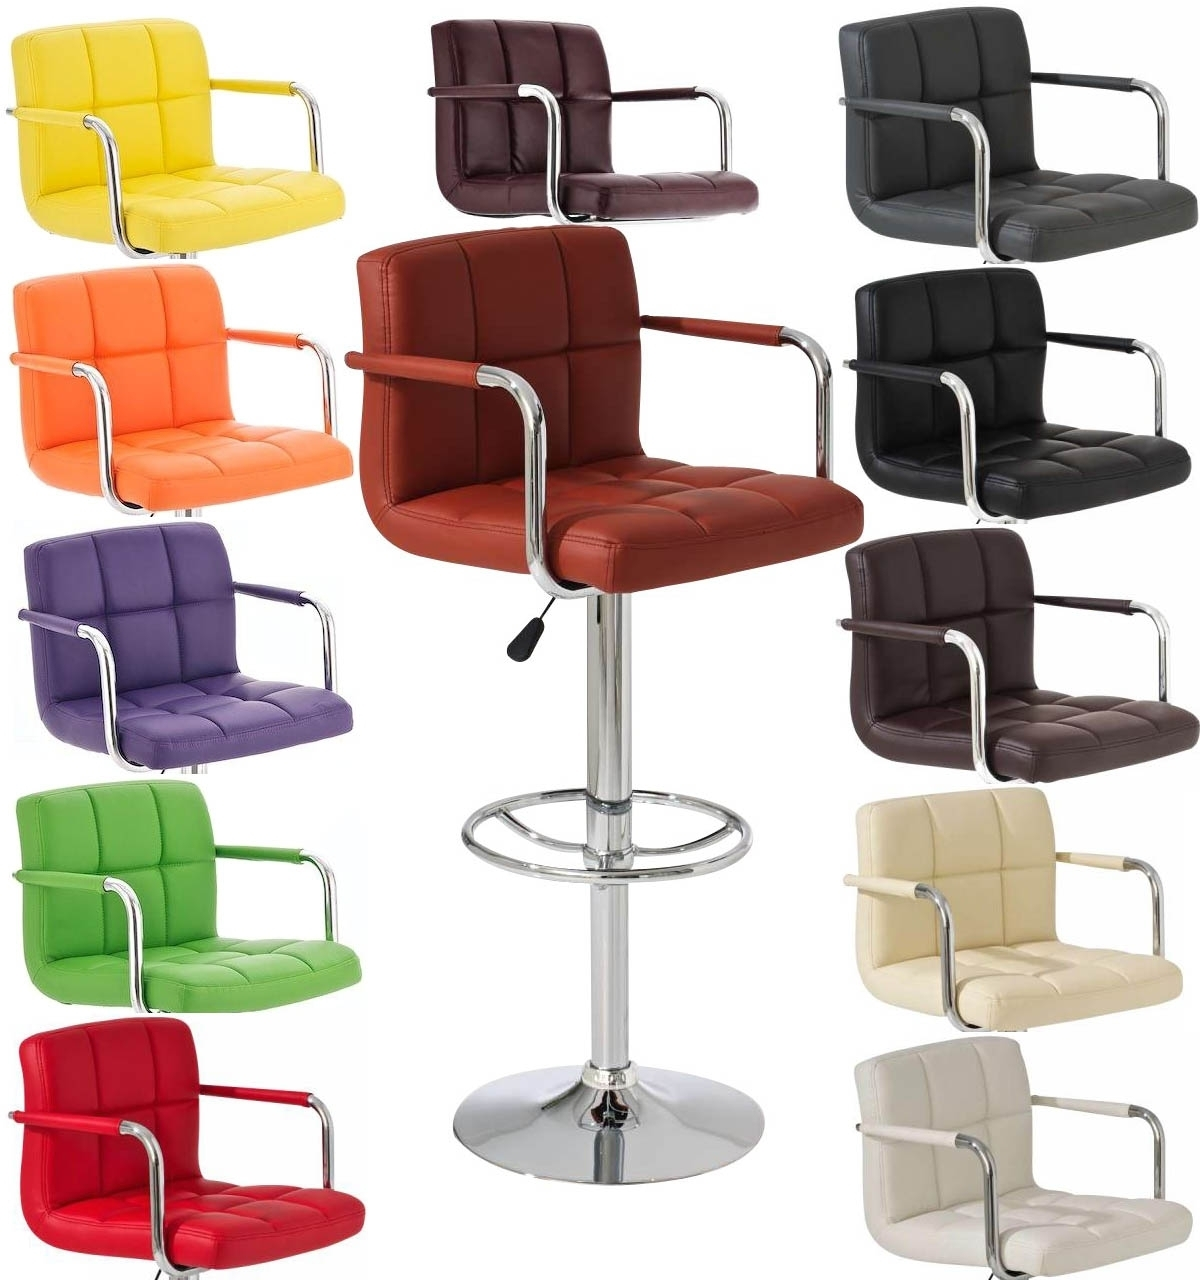 Tabouret fauteuil de bar willord - Tabouret de bar couleur ...